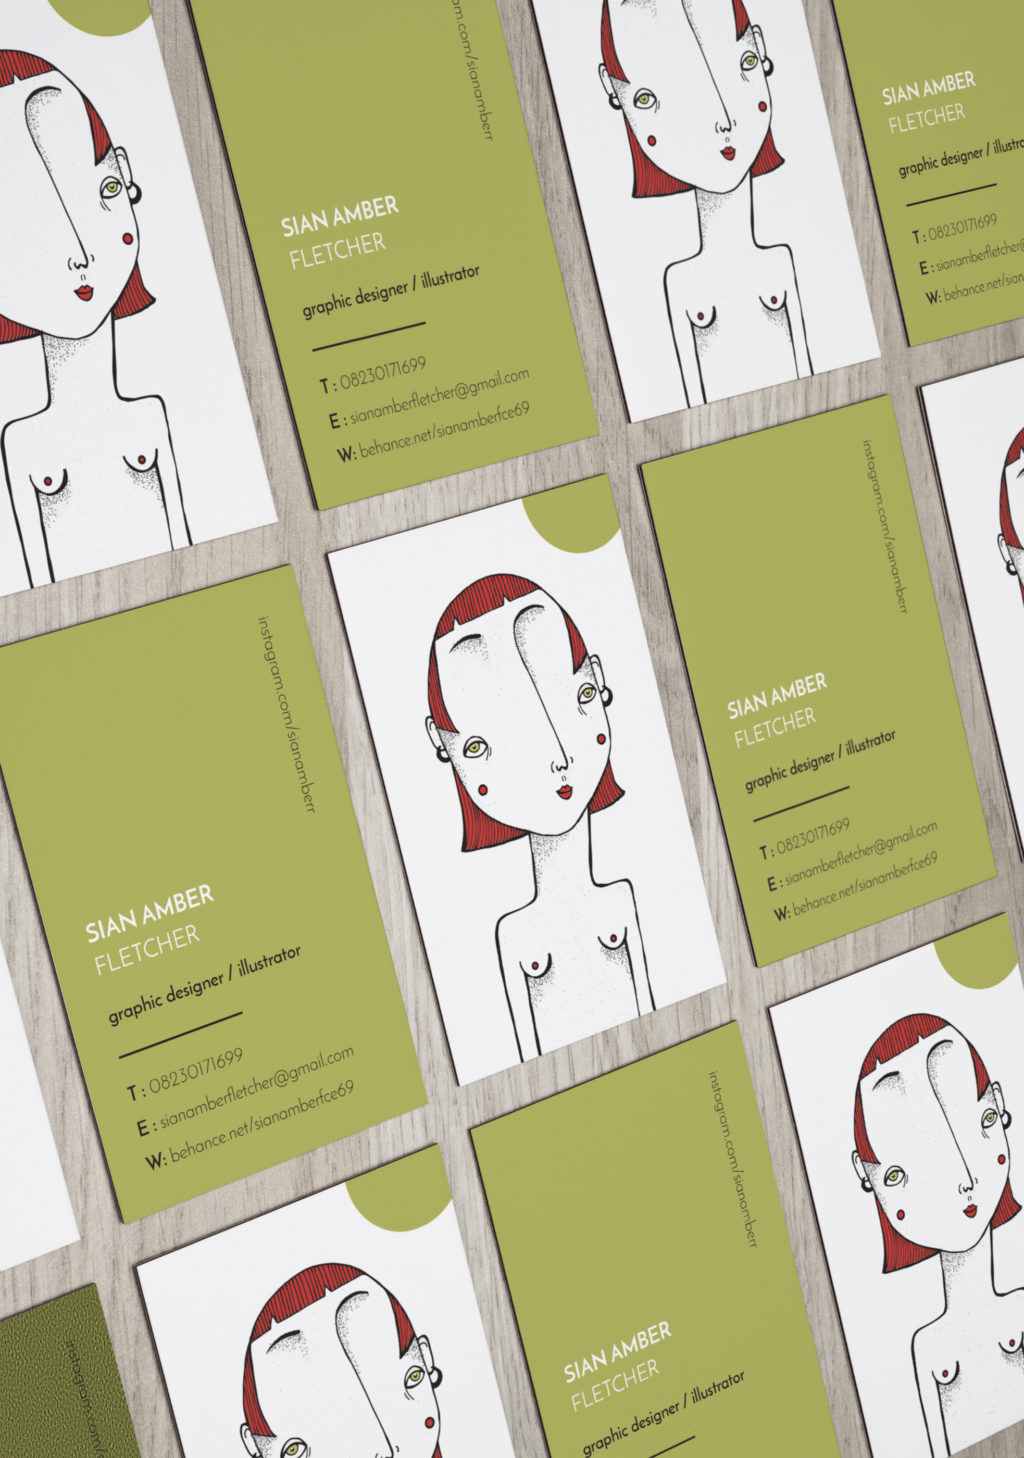 Orms Maker Series: A Corporate Identity for Sian Amber Fletcher